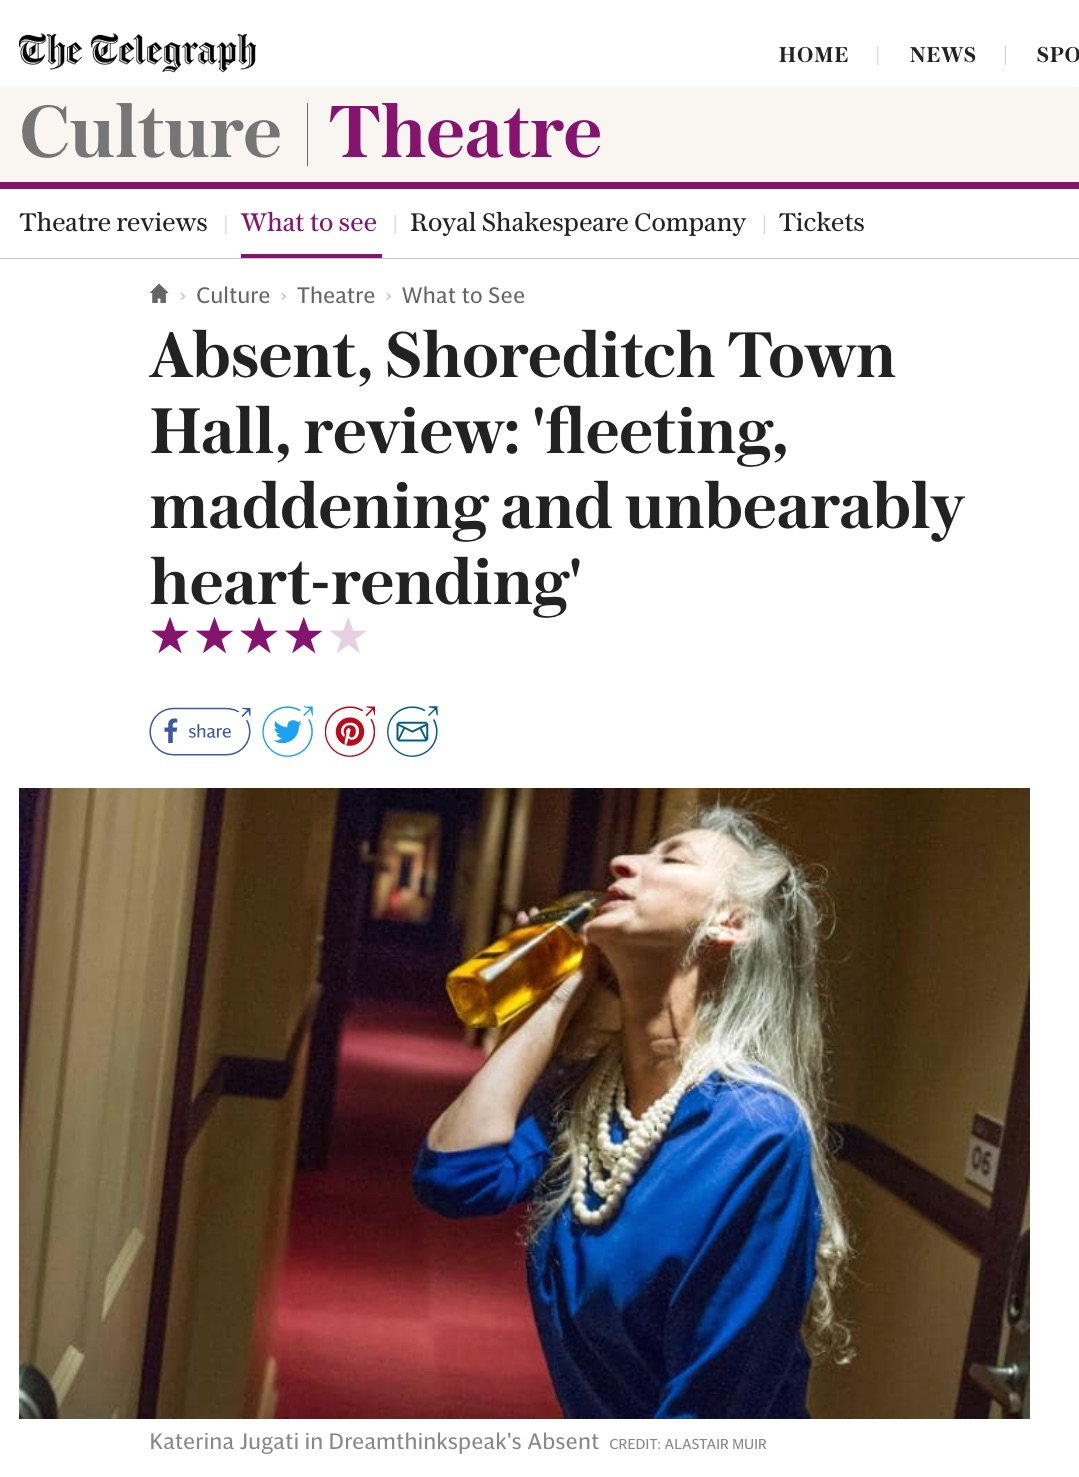 Telegraph Review